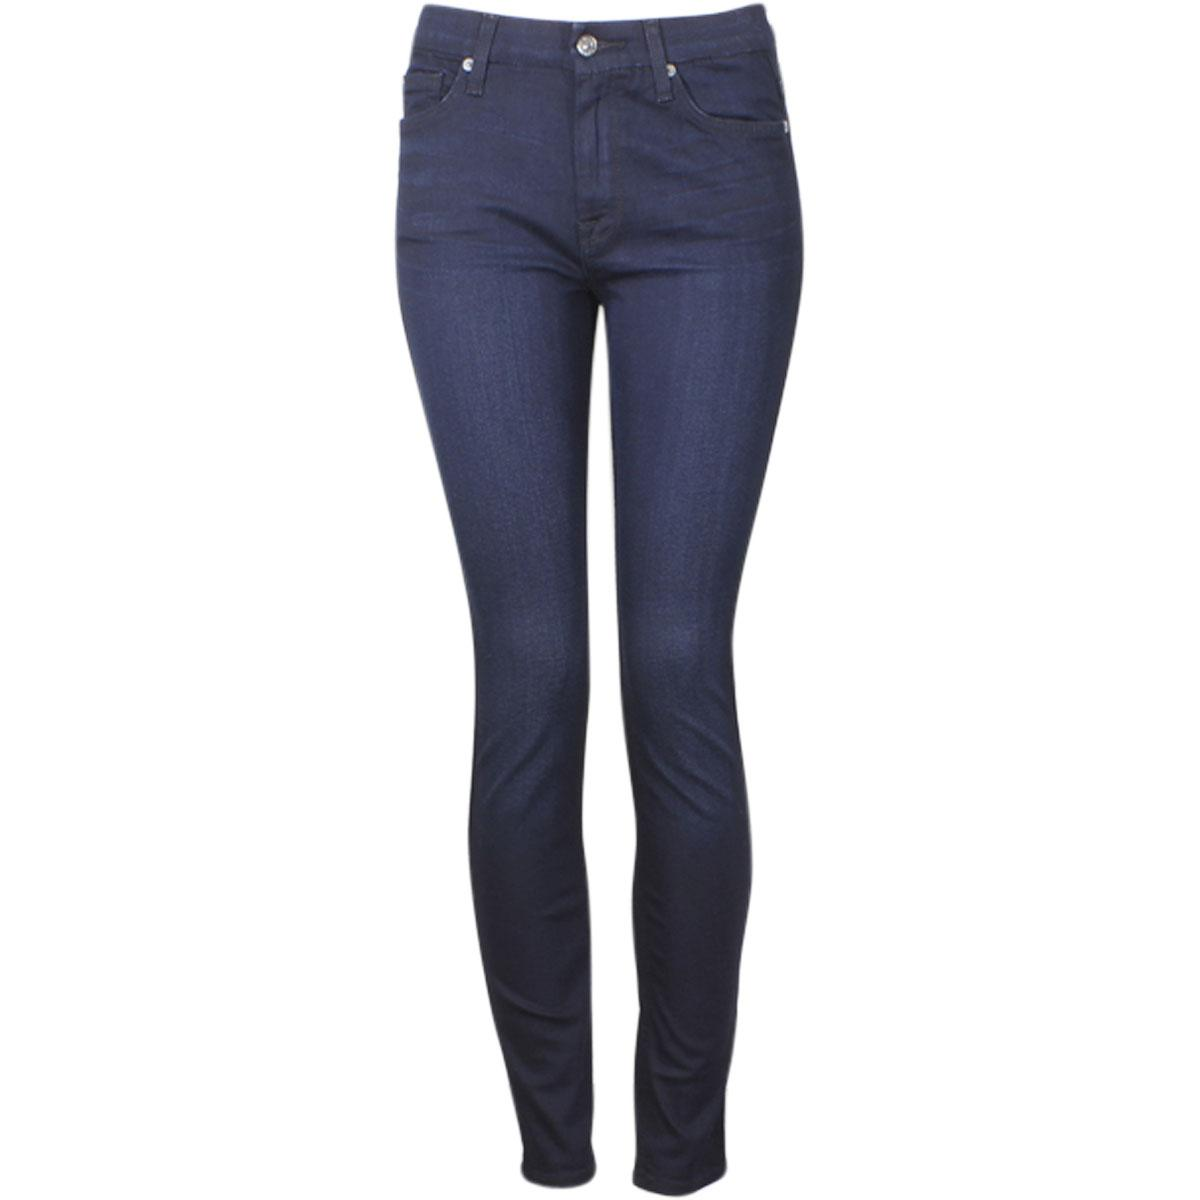 Image of 7 For All Mankind Women's (B)Air Denim The High Waist Skinny Jeans - Blue - 24 (00)